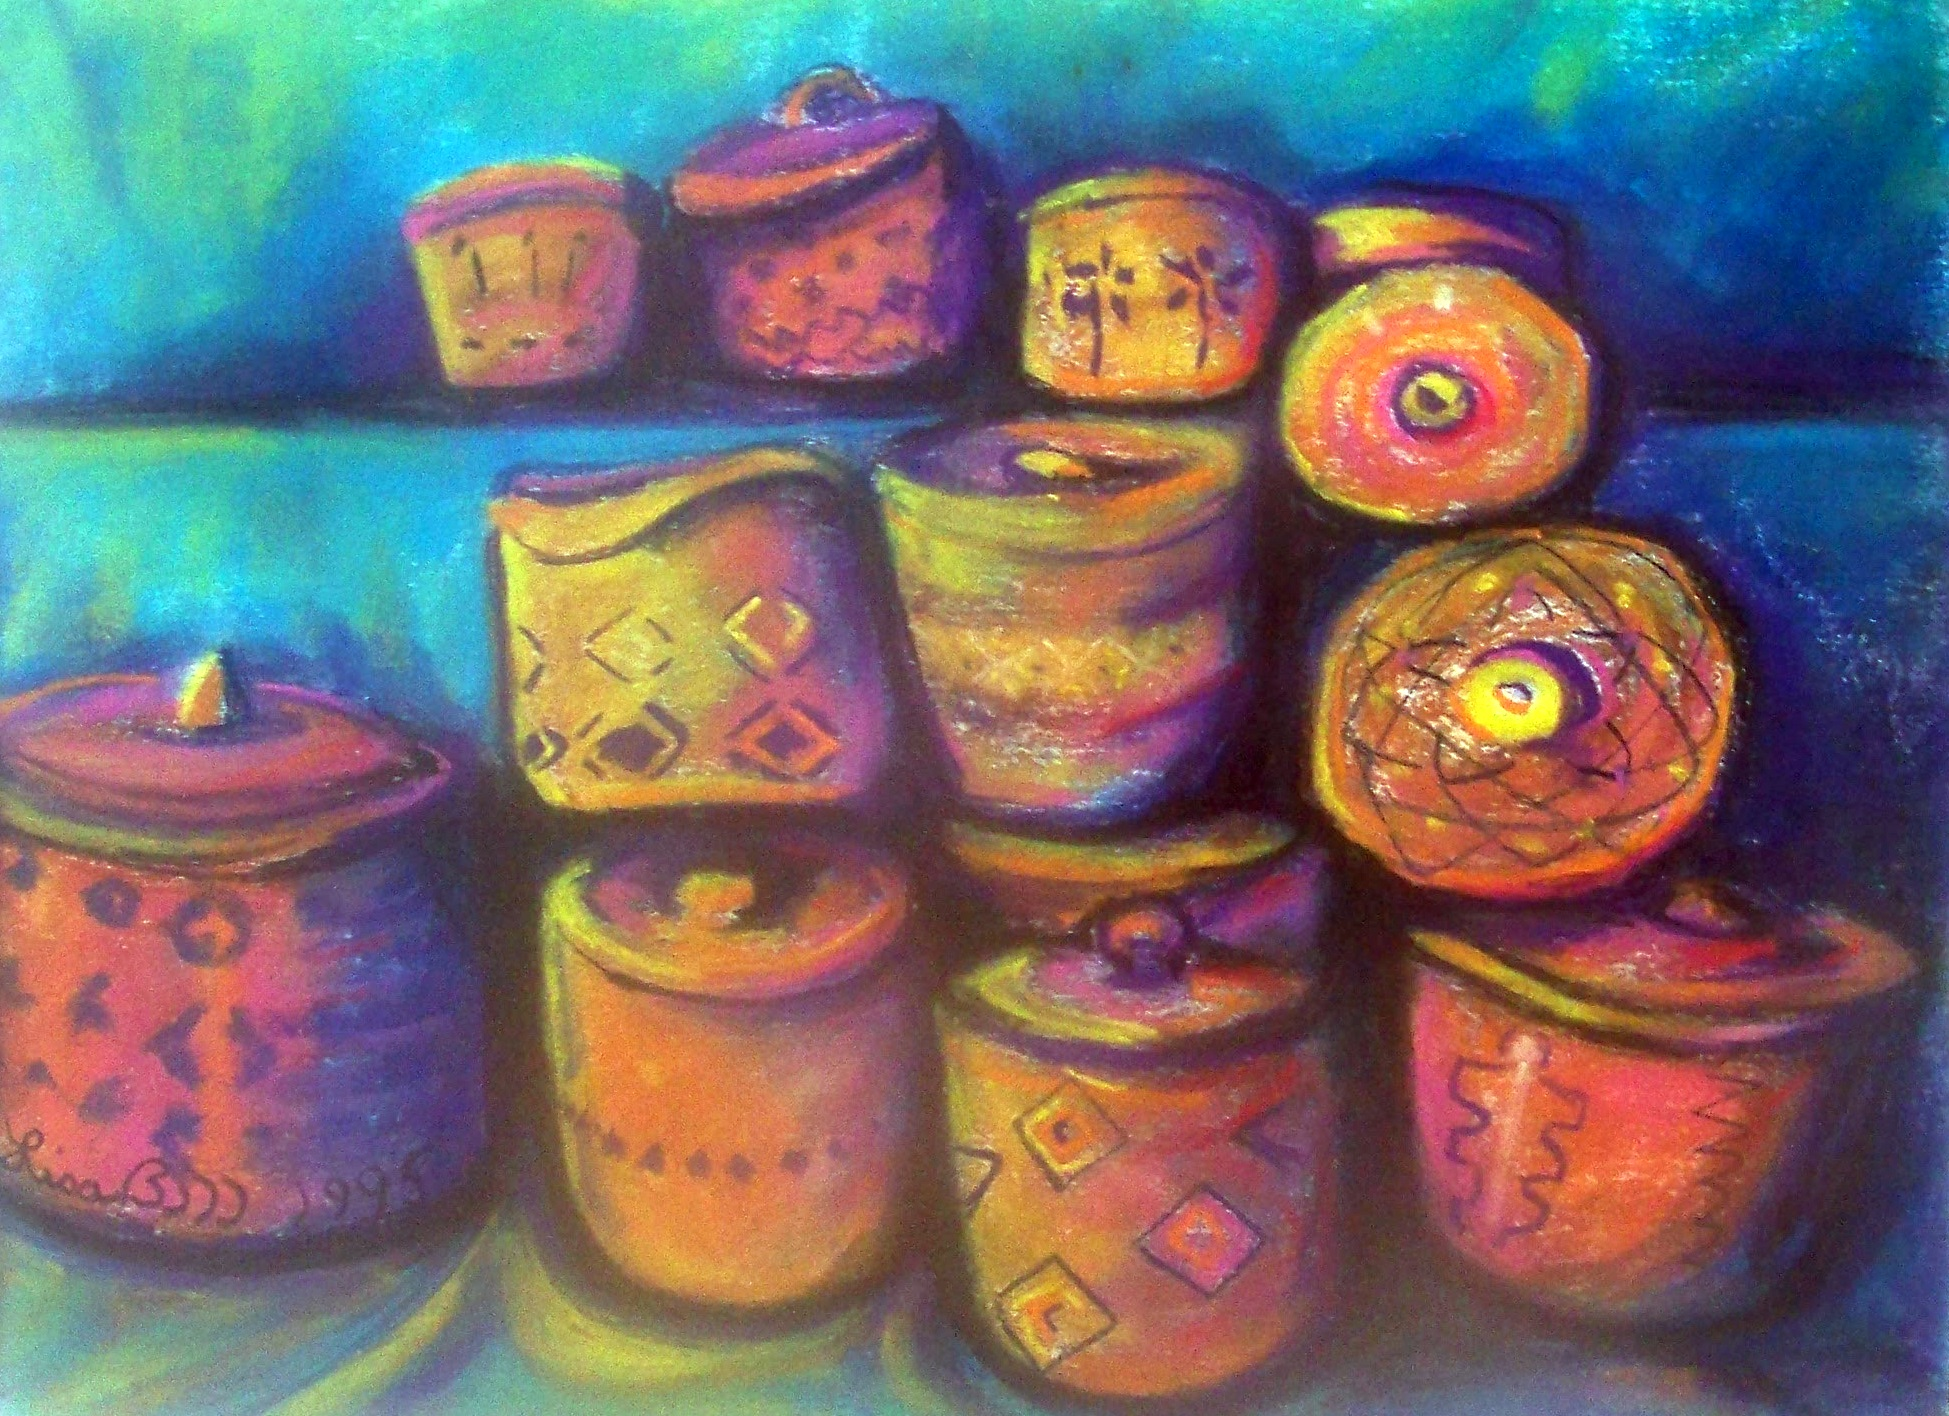 BASKETS 1995 Pastel By Lisa Bell (Lisabelle), American art of American Indians Basket Weaving, Colorful expression of baskets in painting by Lisabelle